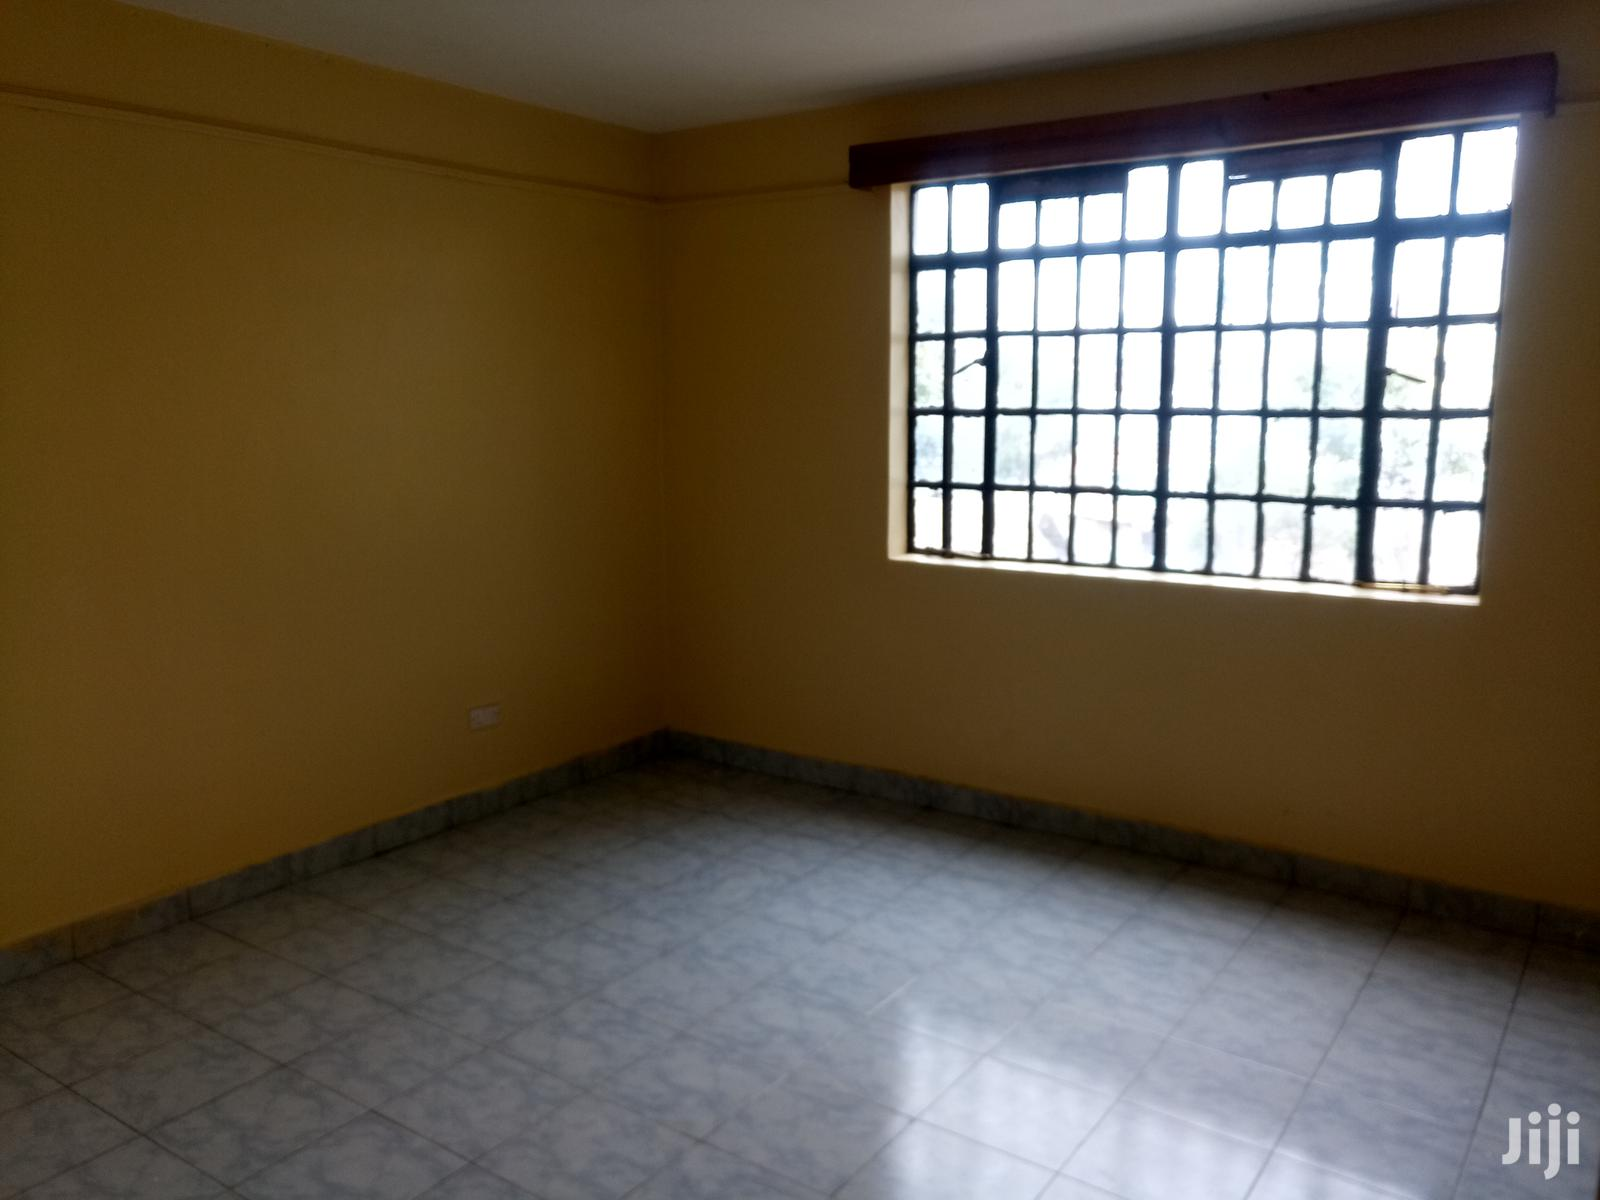 Two Bed Roomed House Near Tuskys Supermarket. | Houses & Apartments For Rent for sale in Ongata Rongai, Kajiado, Kenya